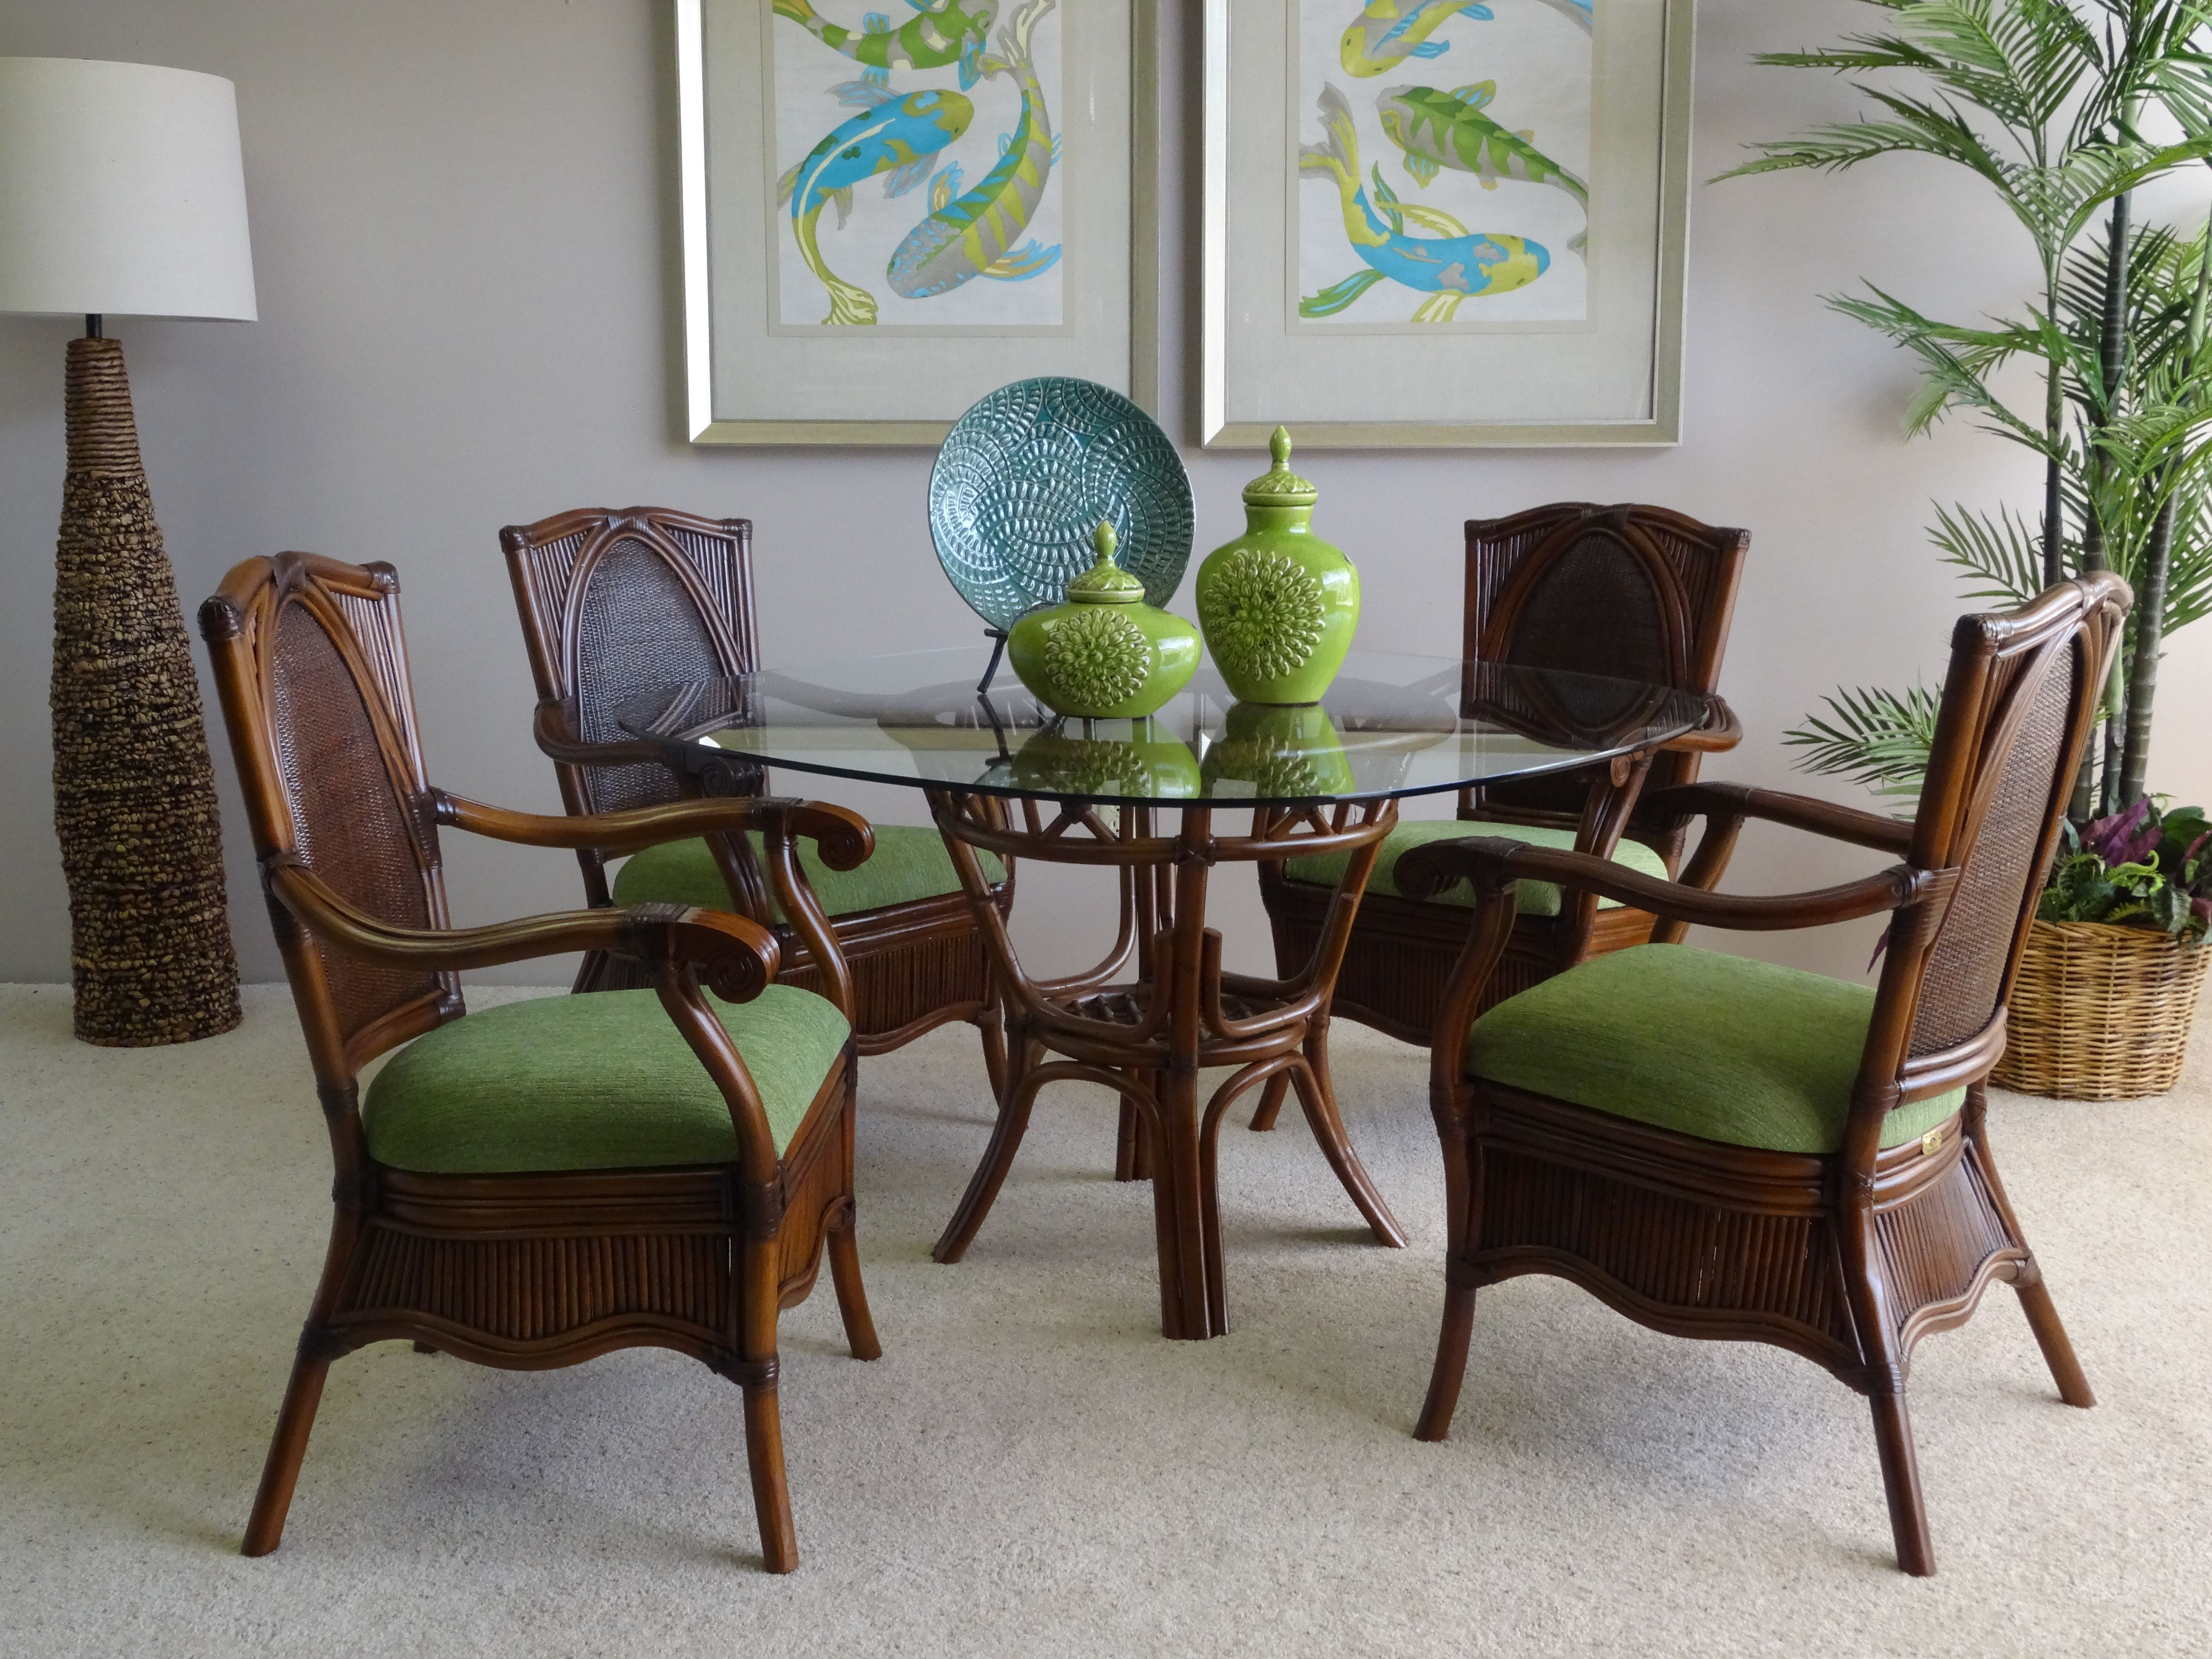 Bring Tropical Elgeance Into Your Dining Room Space Our Woodemere Set In The Fruitwood